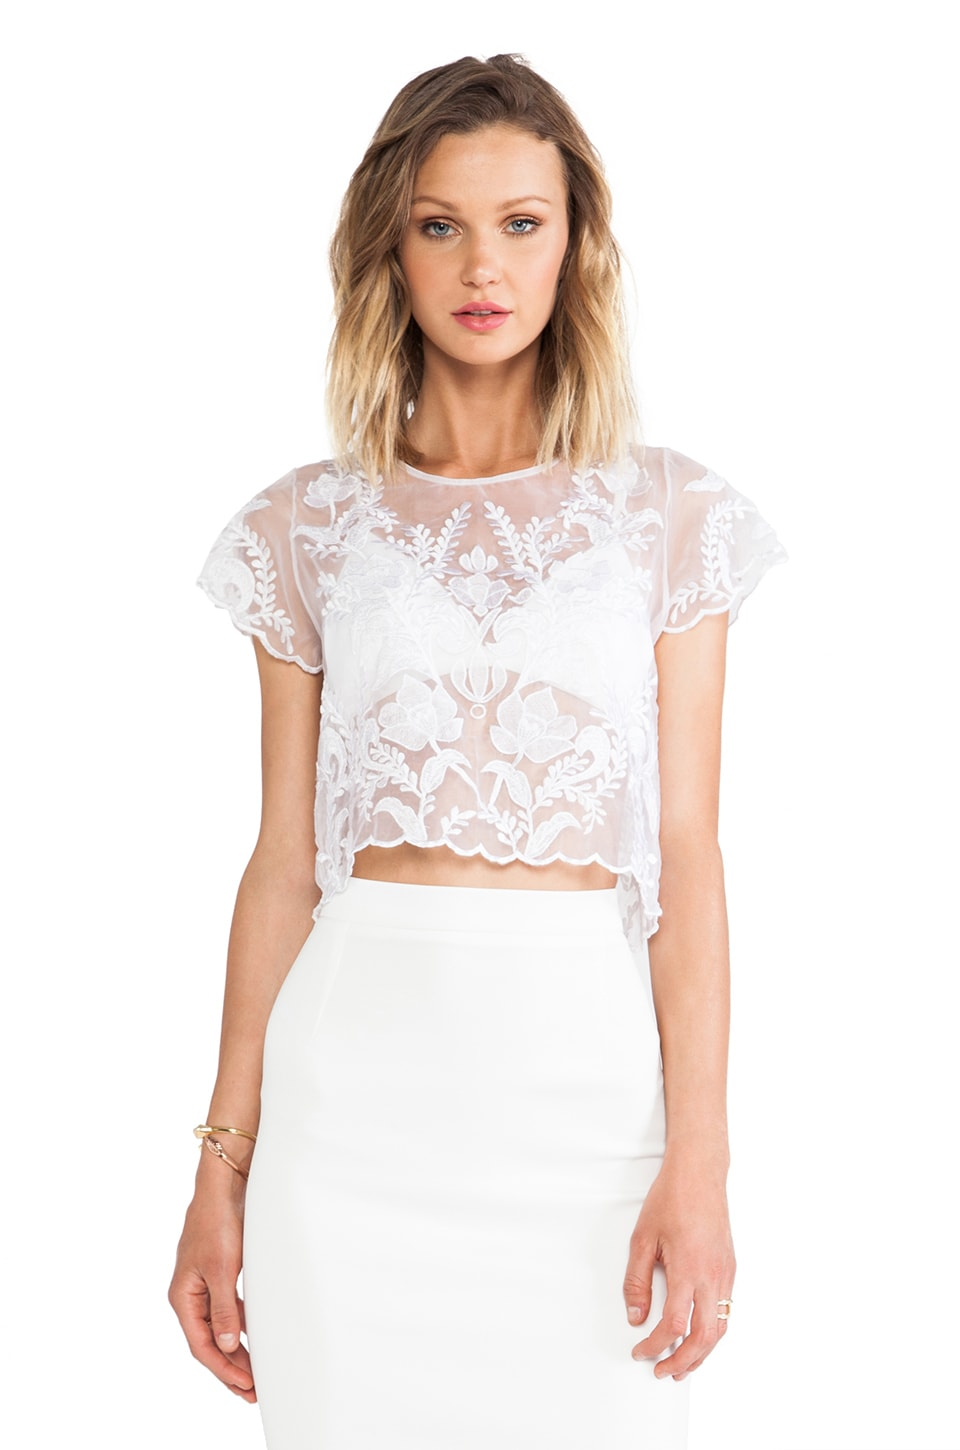 Lovers + Friends Hey Love Crop Top in White